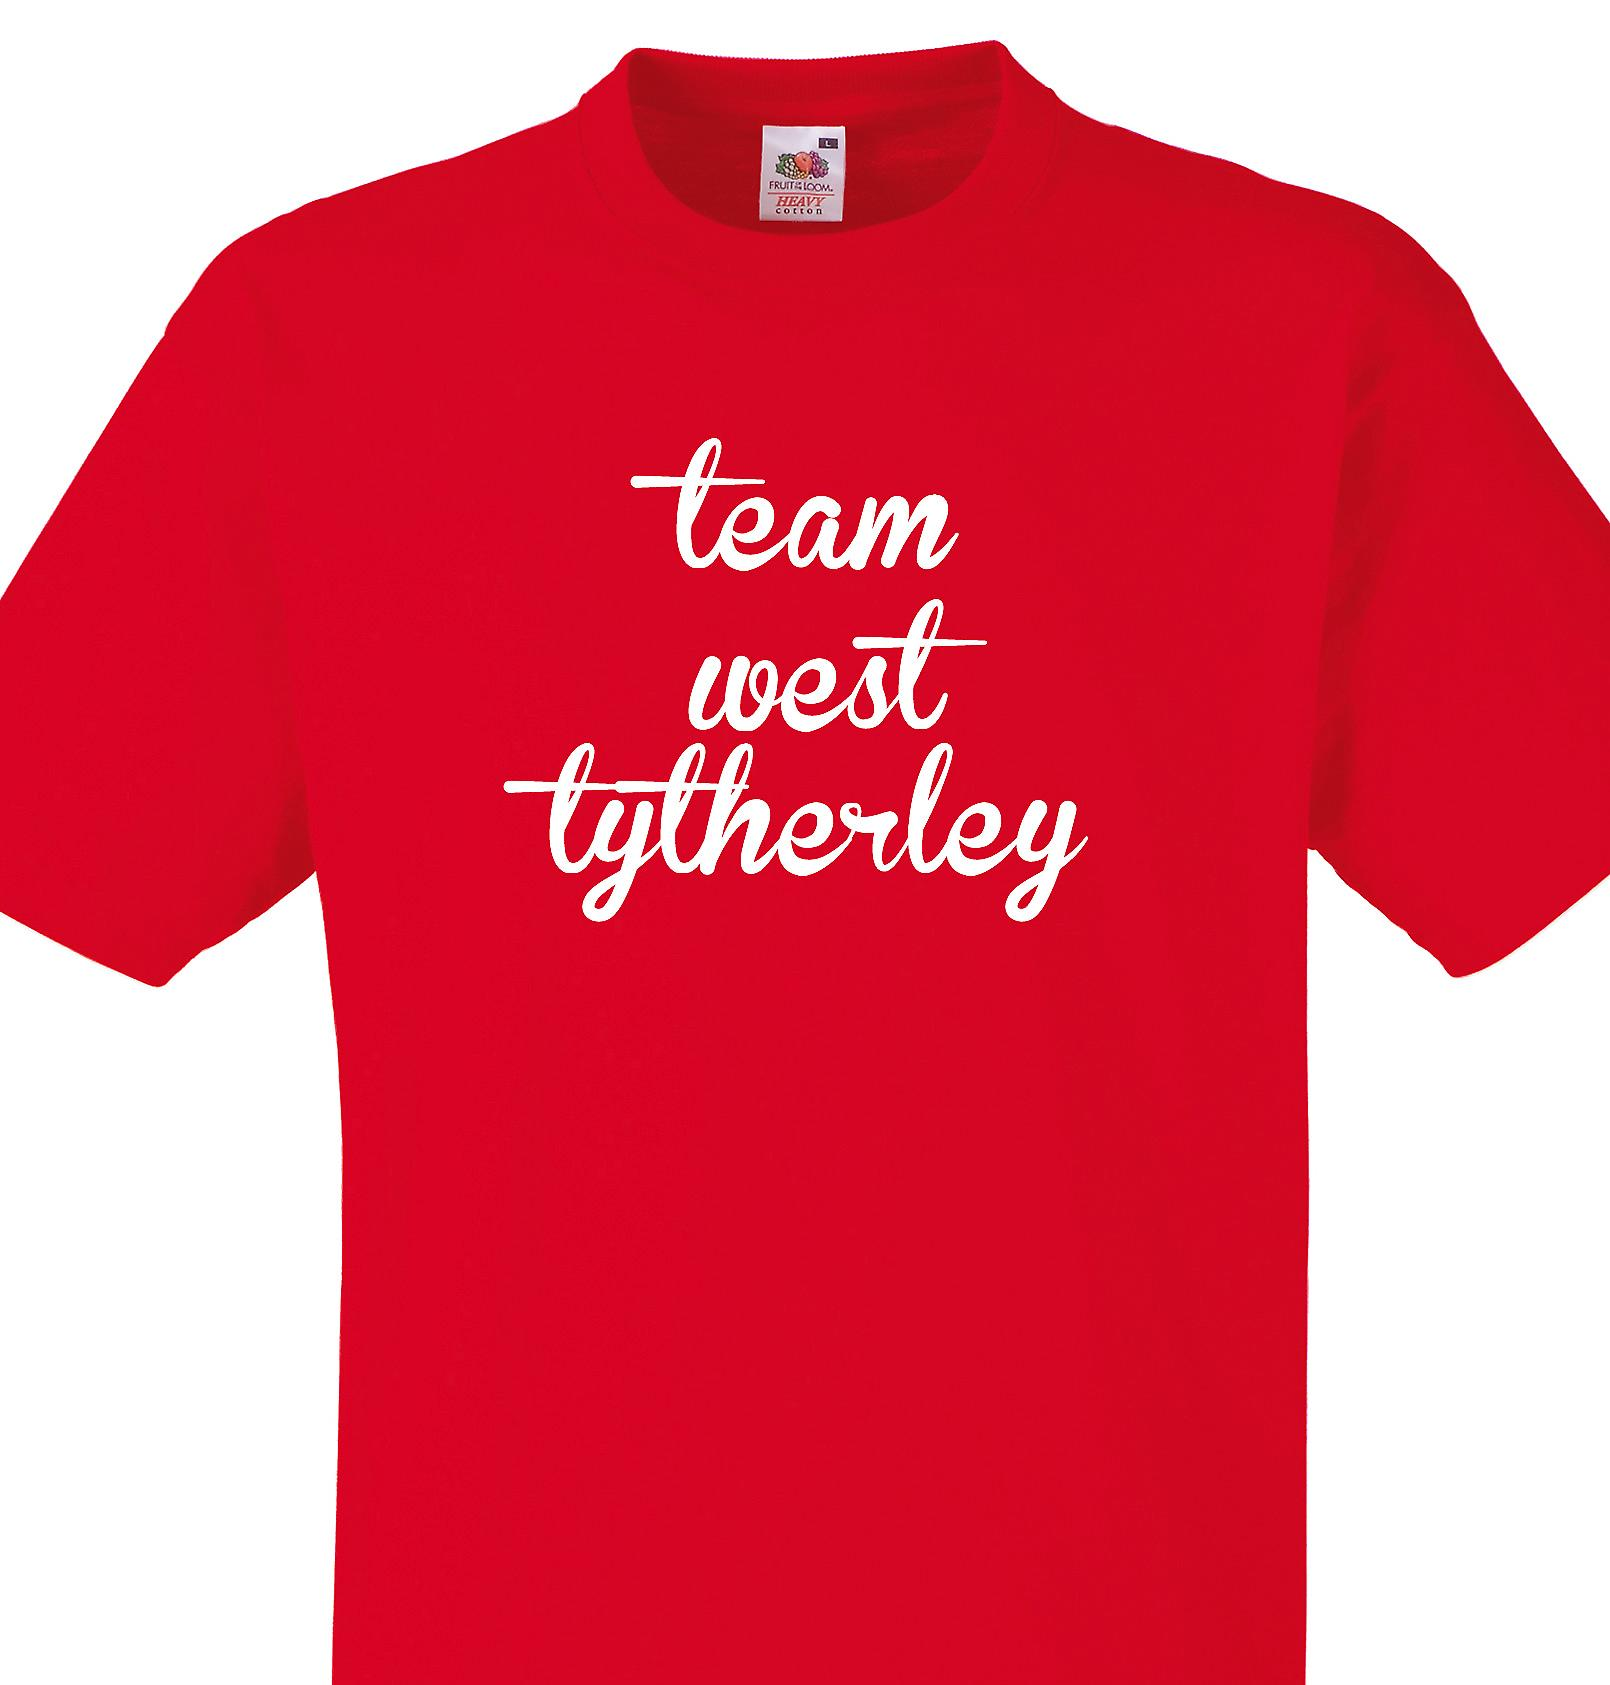 Team West tytherley Red T shirt